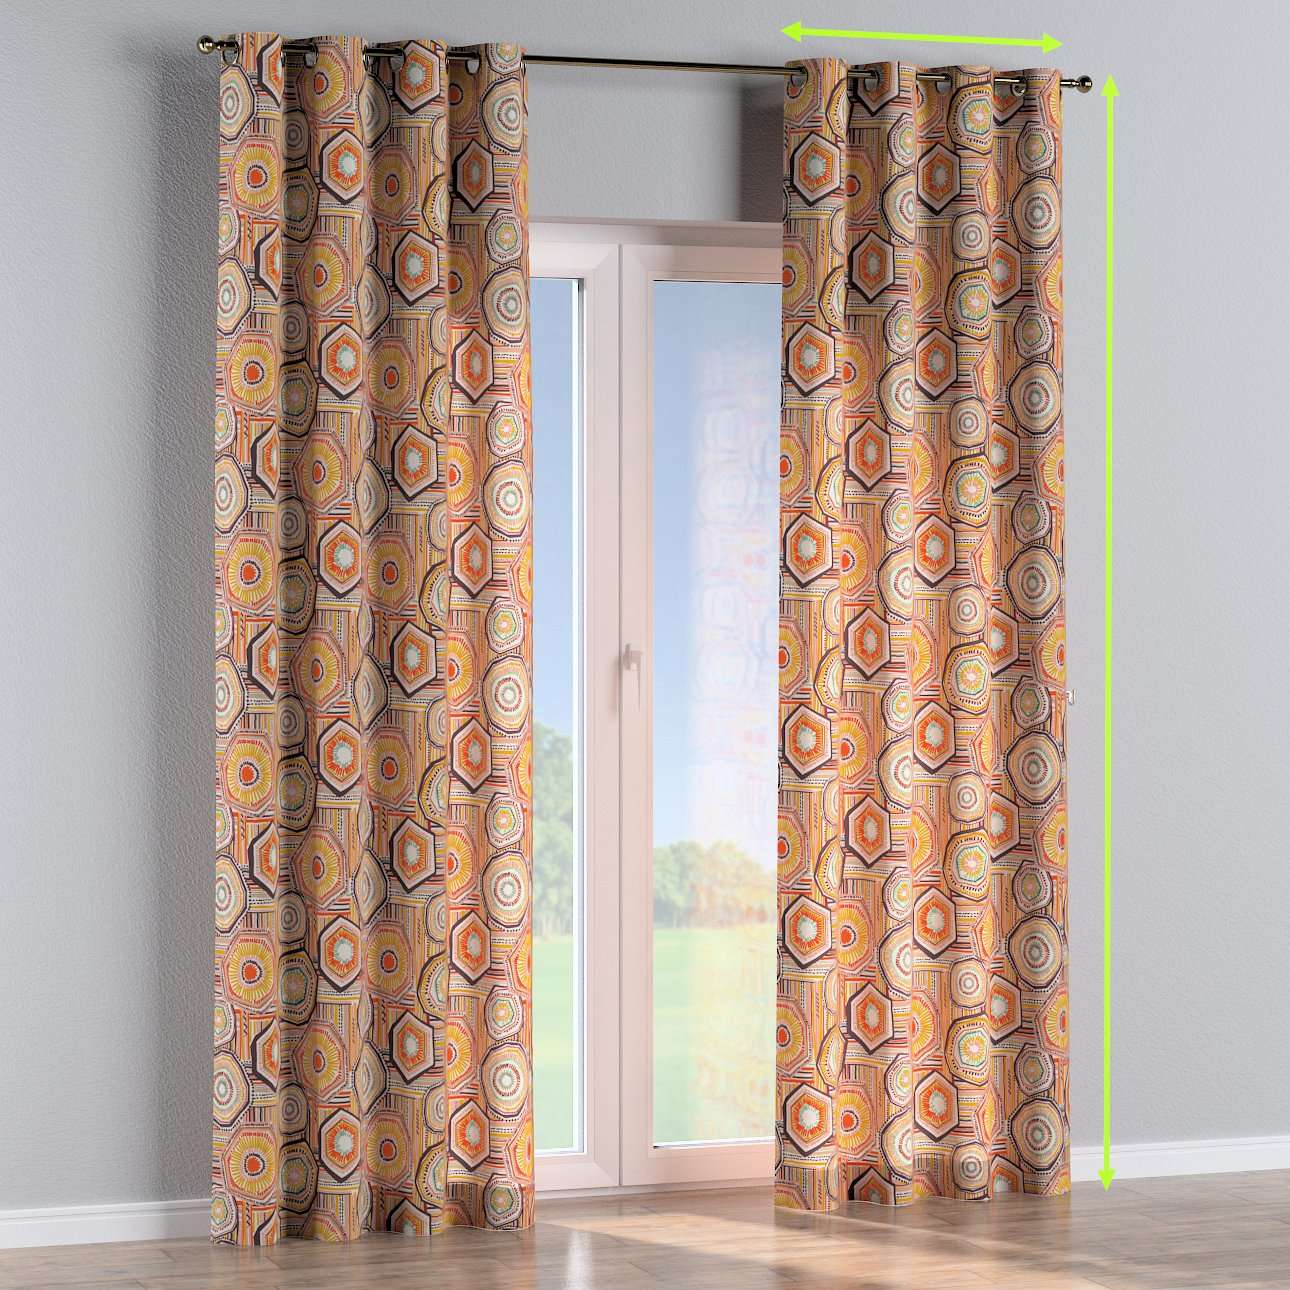 Eyelet curtains in collection New Art, fabric: 141-55